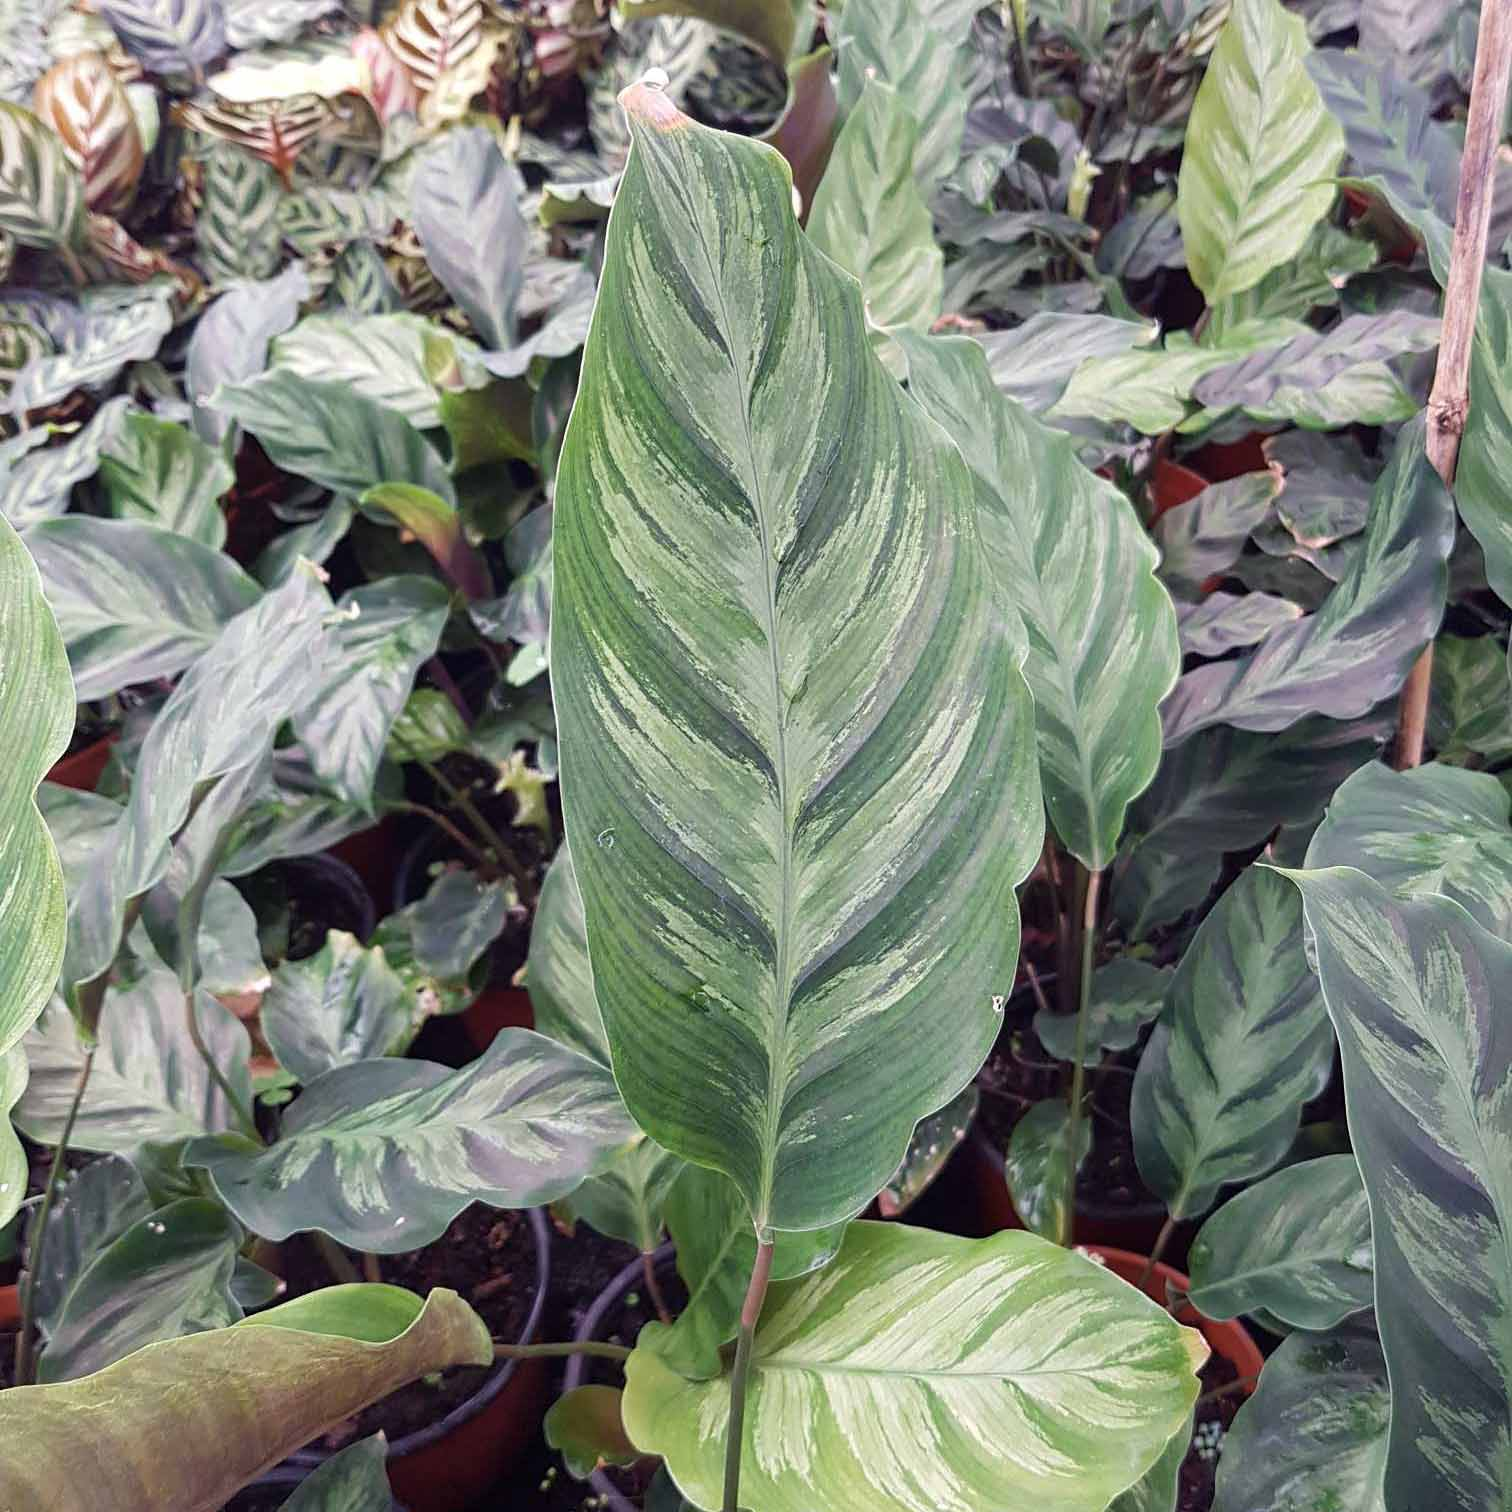 Calathea de Mixto